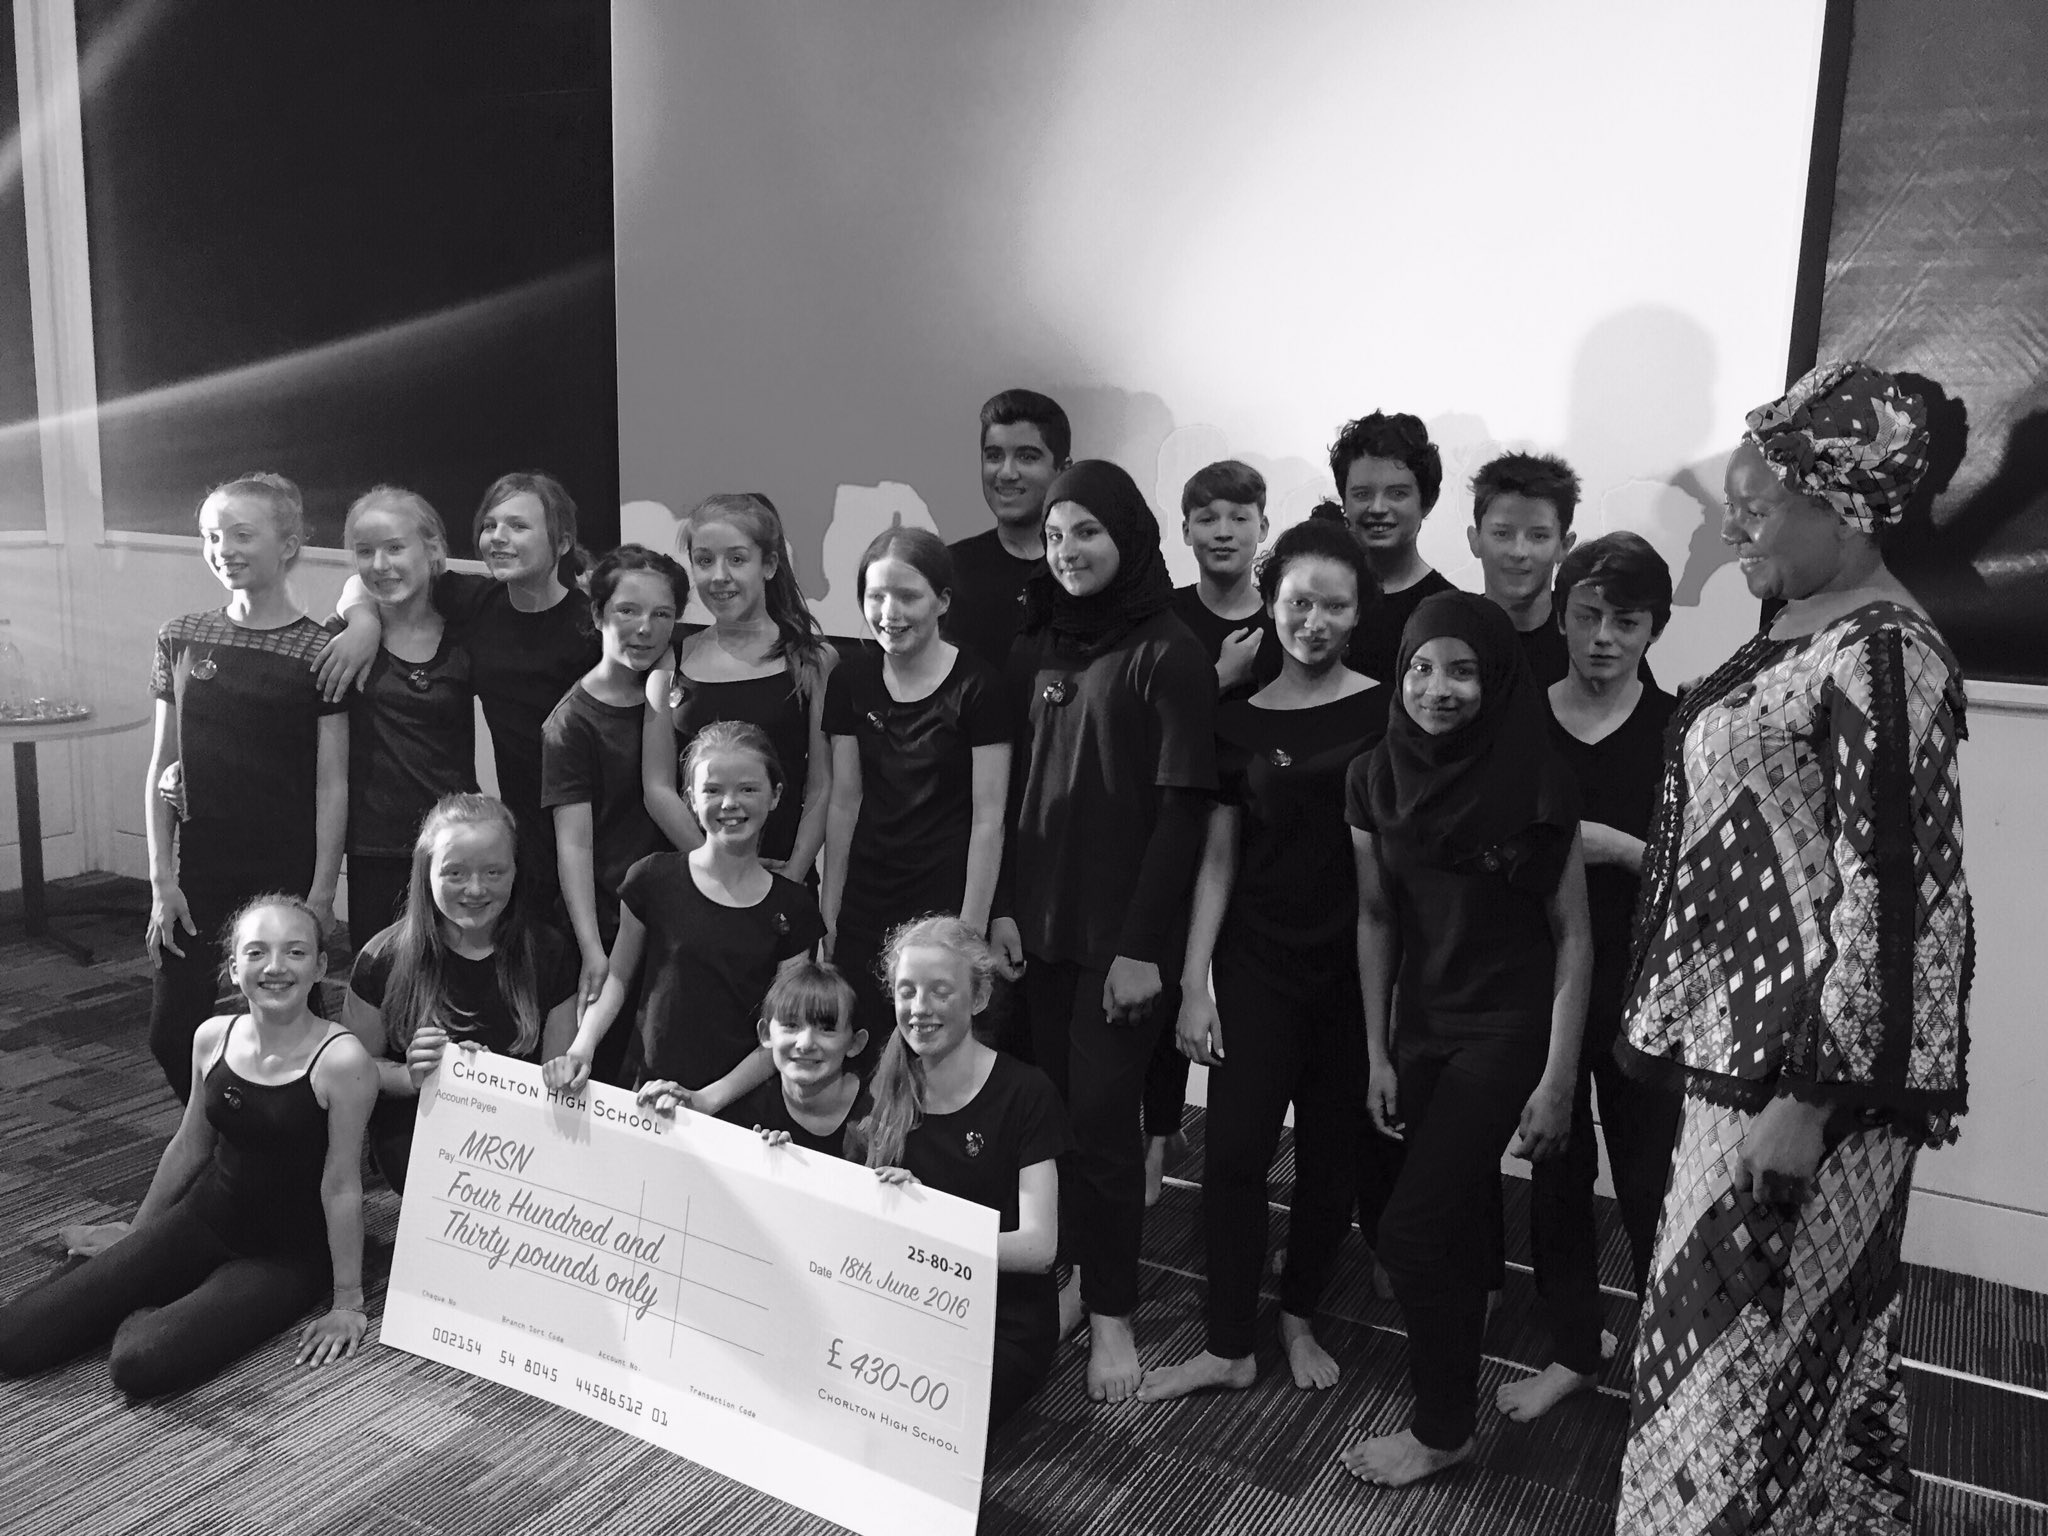 Amazing performance at @mcrartgallery for #refugeeweek. Here's our students presenting a cheque to @mrsnonline #arts https://t.co/4cPCGxOaY3